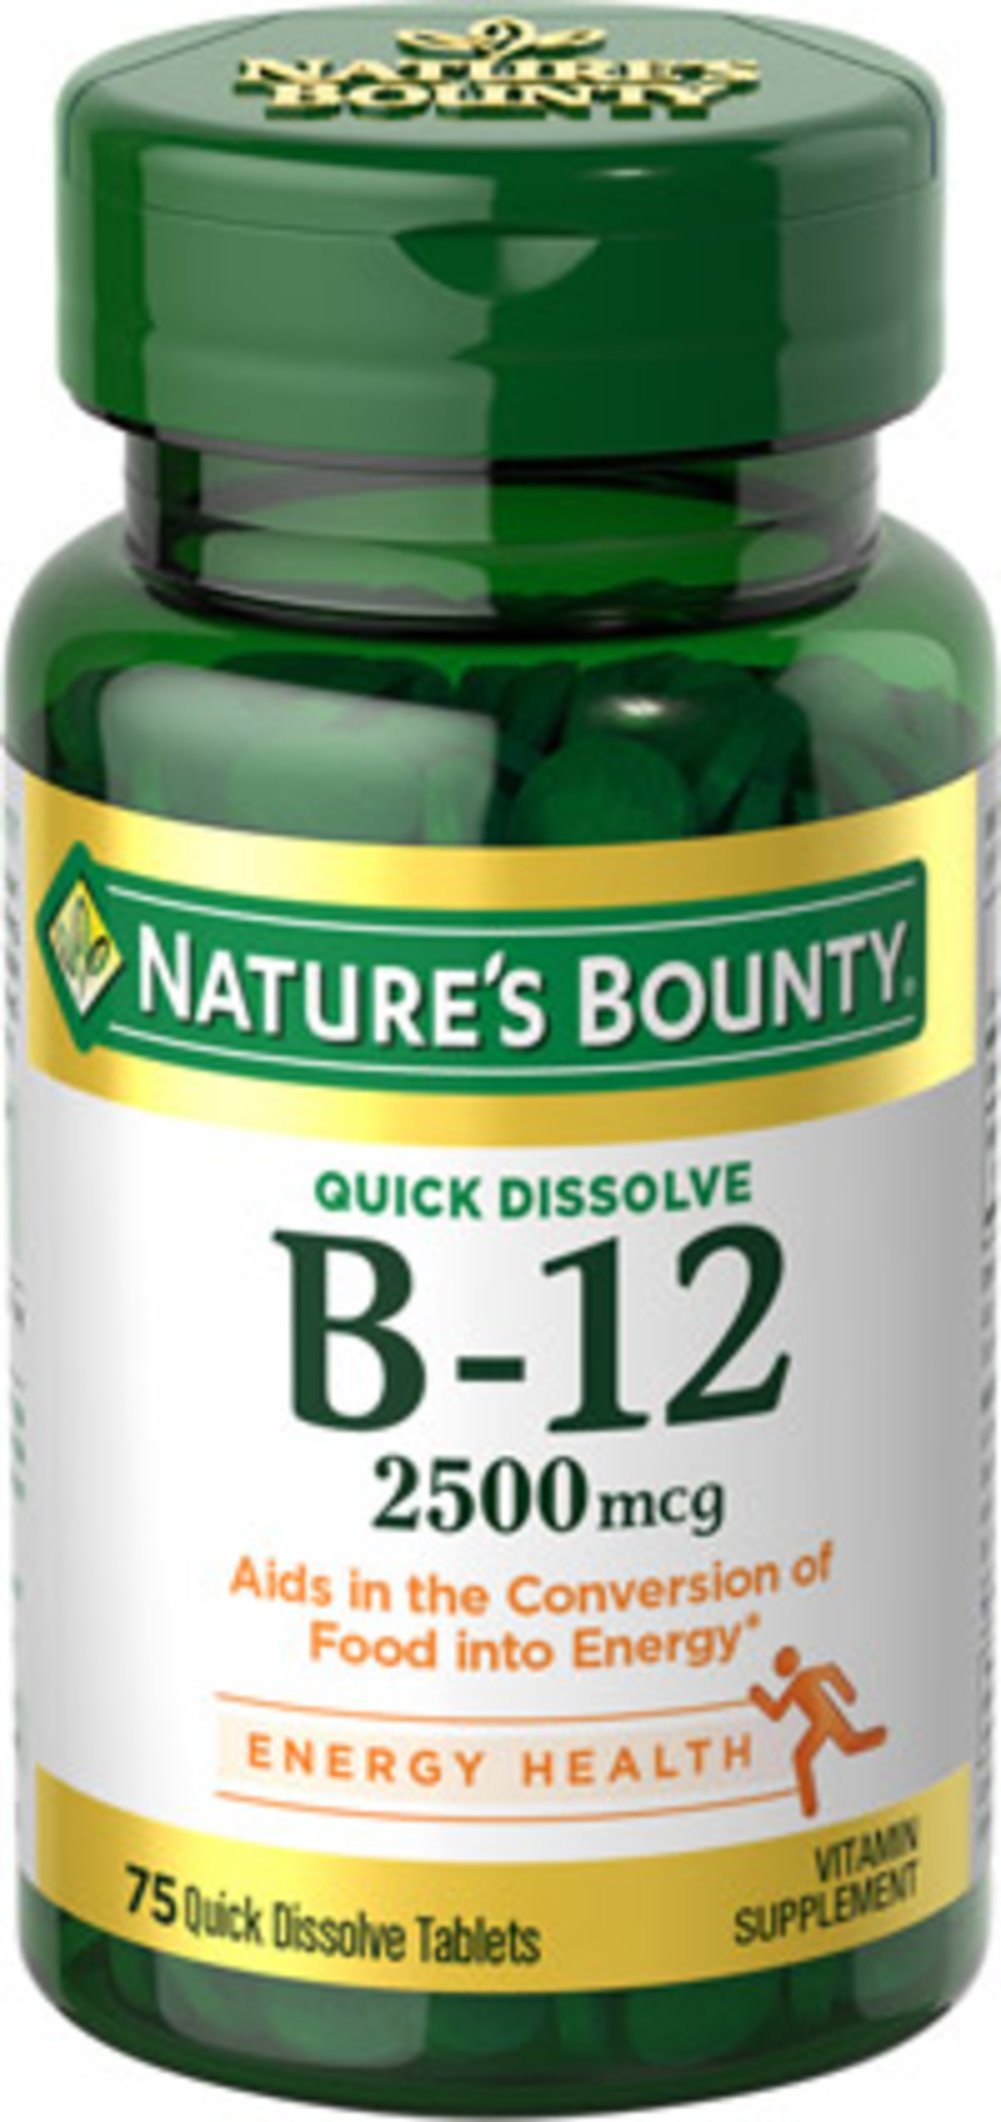 Nature's Bounty® Quick Dissolve B12 2500 mcg